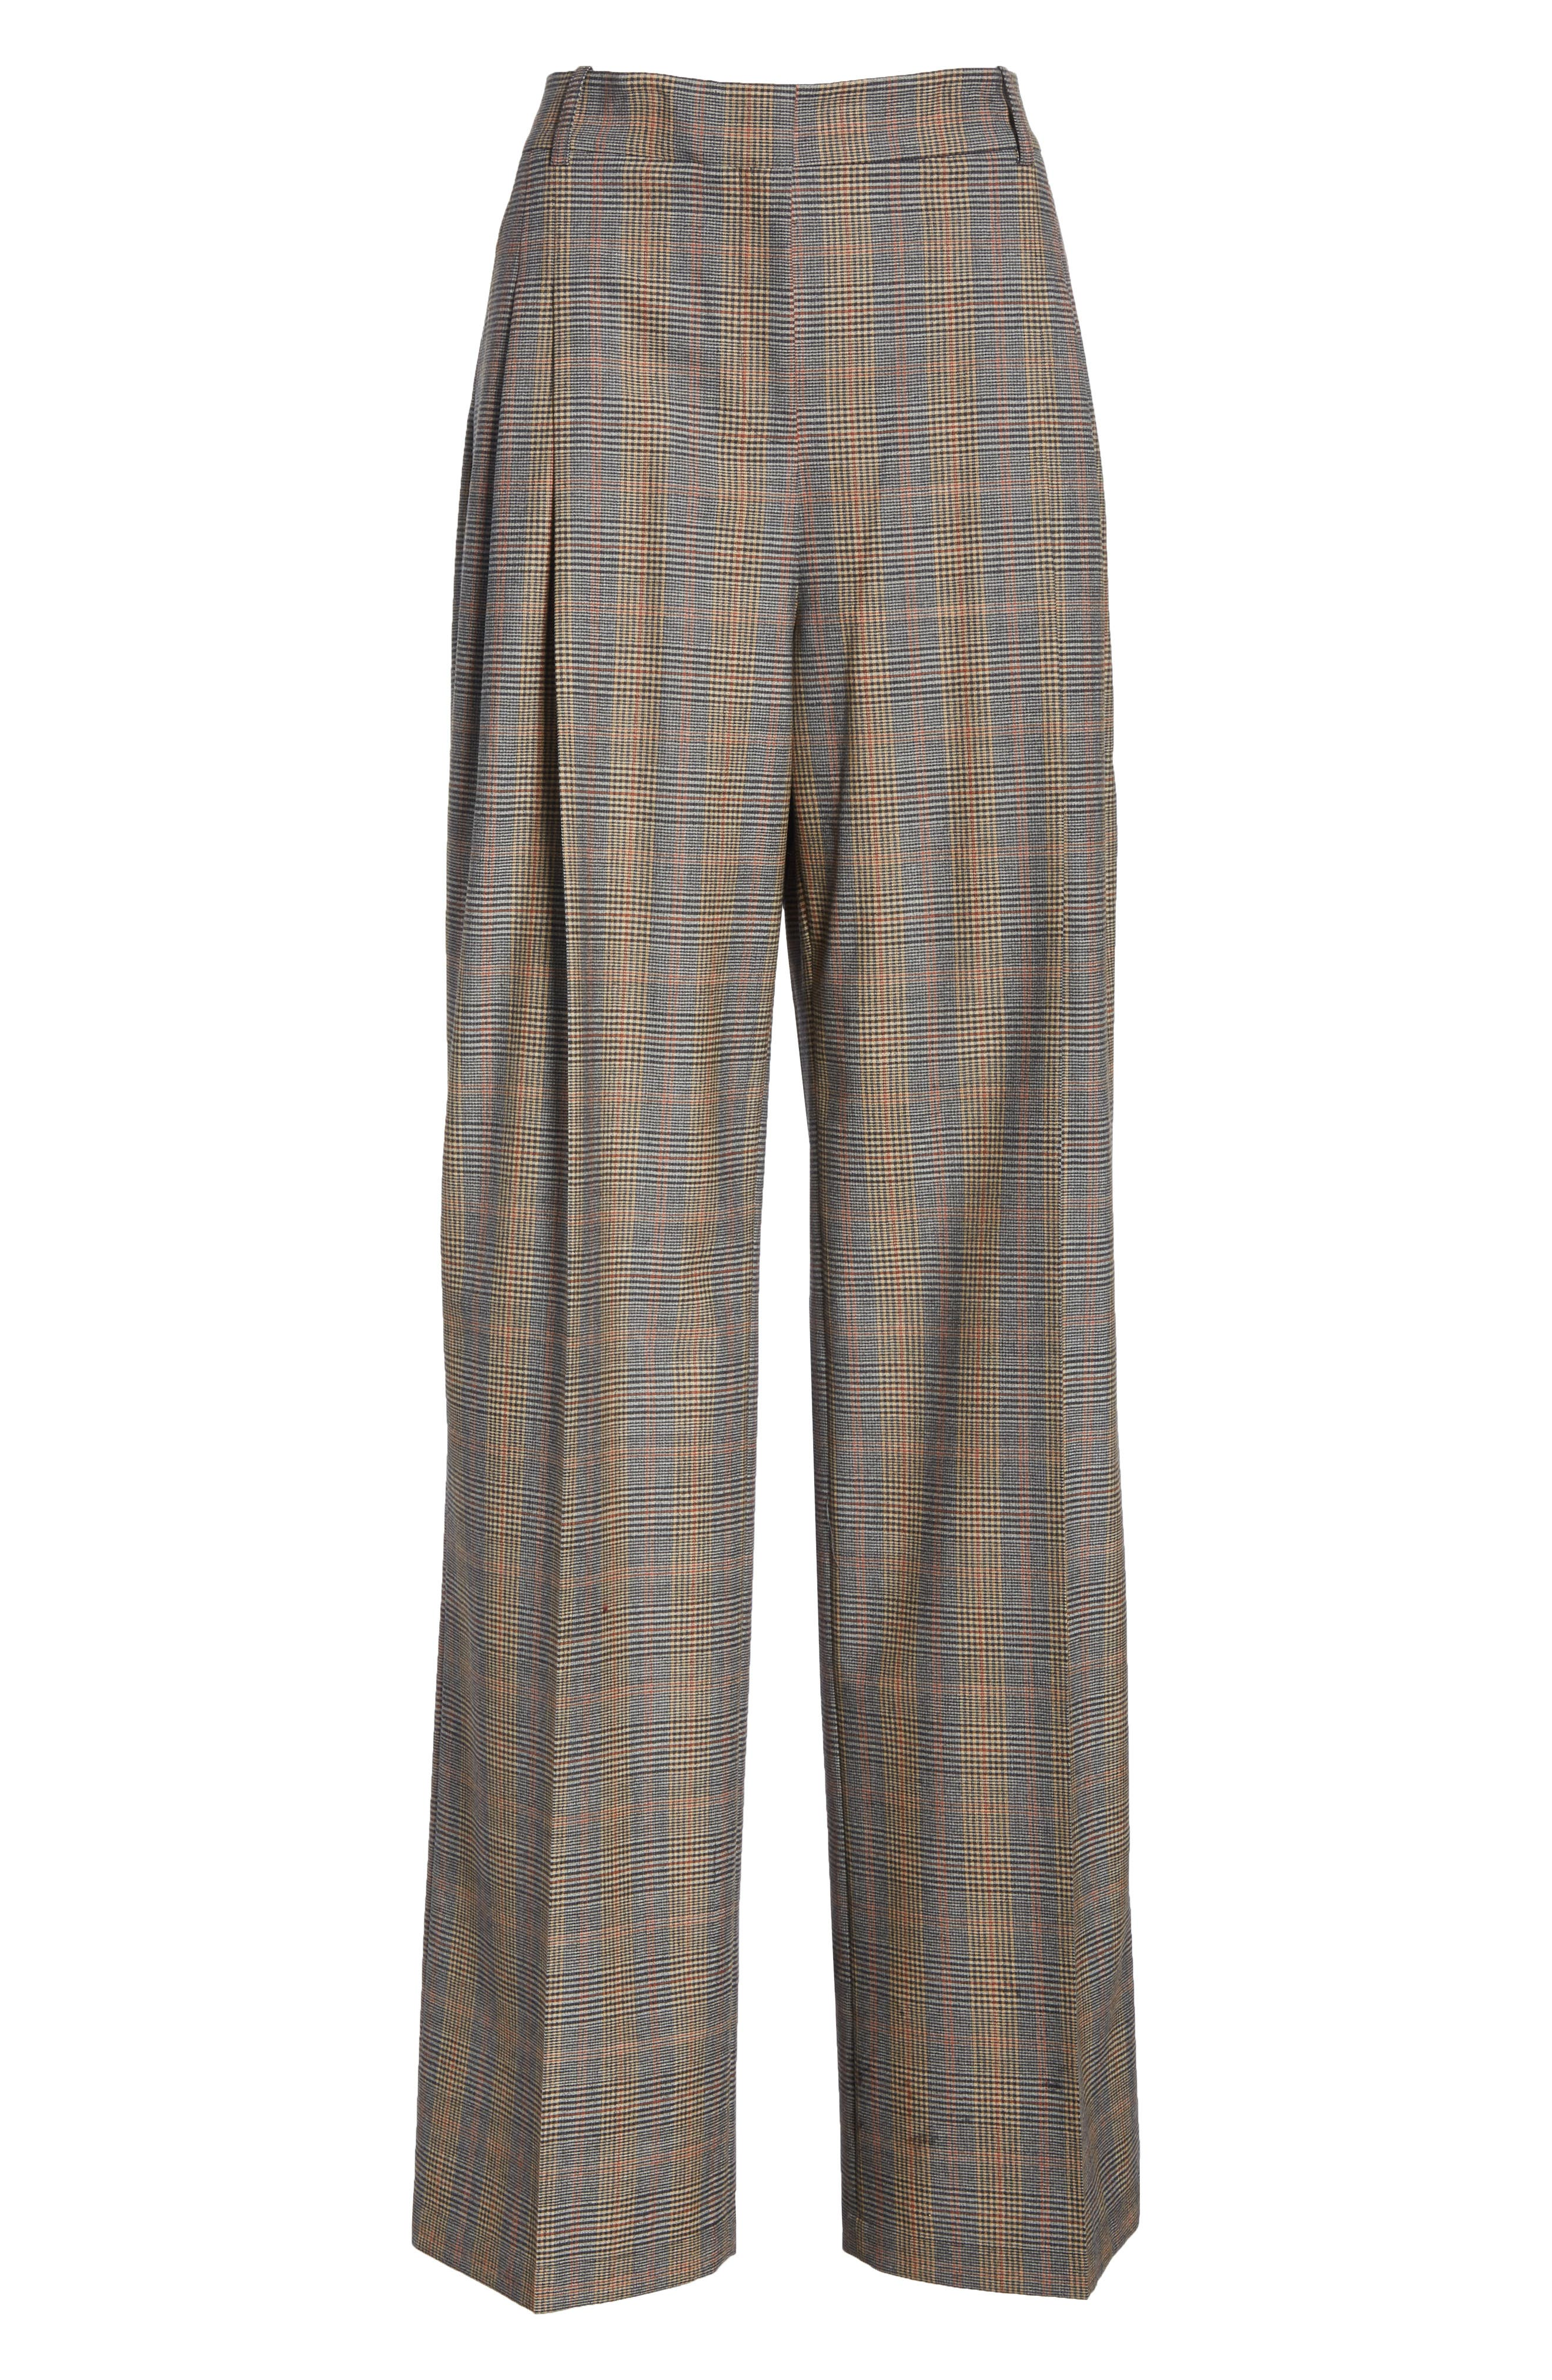 Quincy Stretch Wool Pants,                             Alternate thumbnail 6, color,                             SUNSTONE MULTI